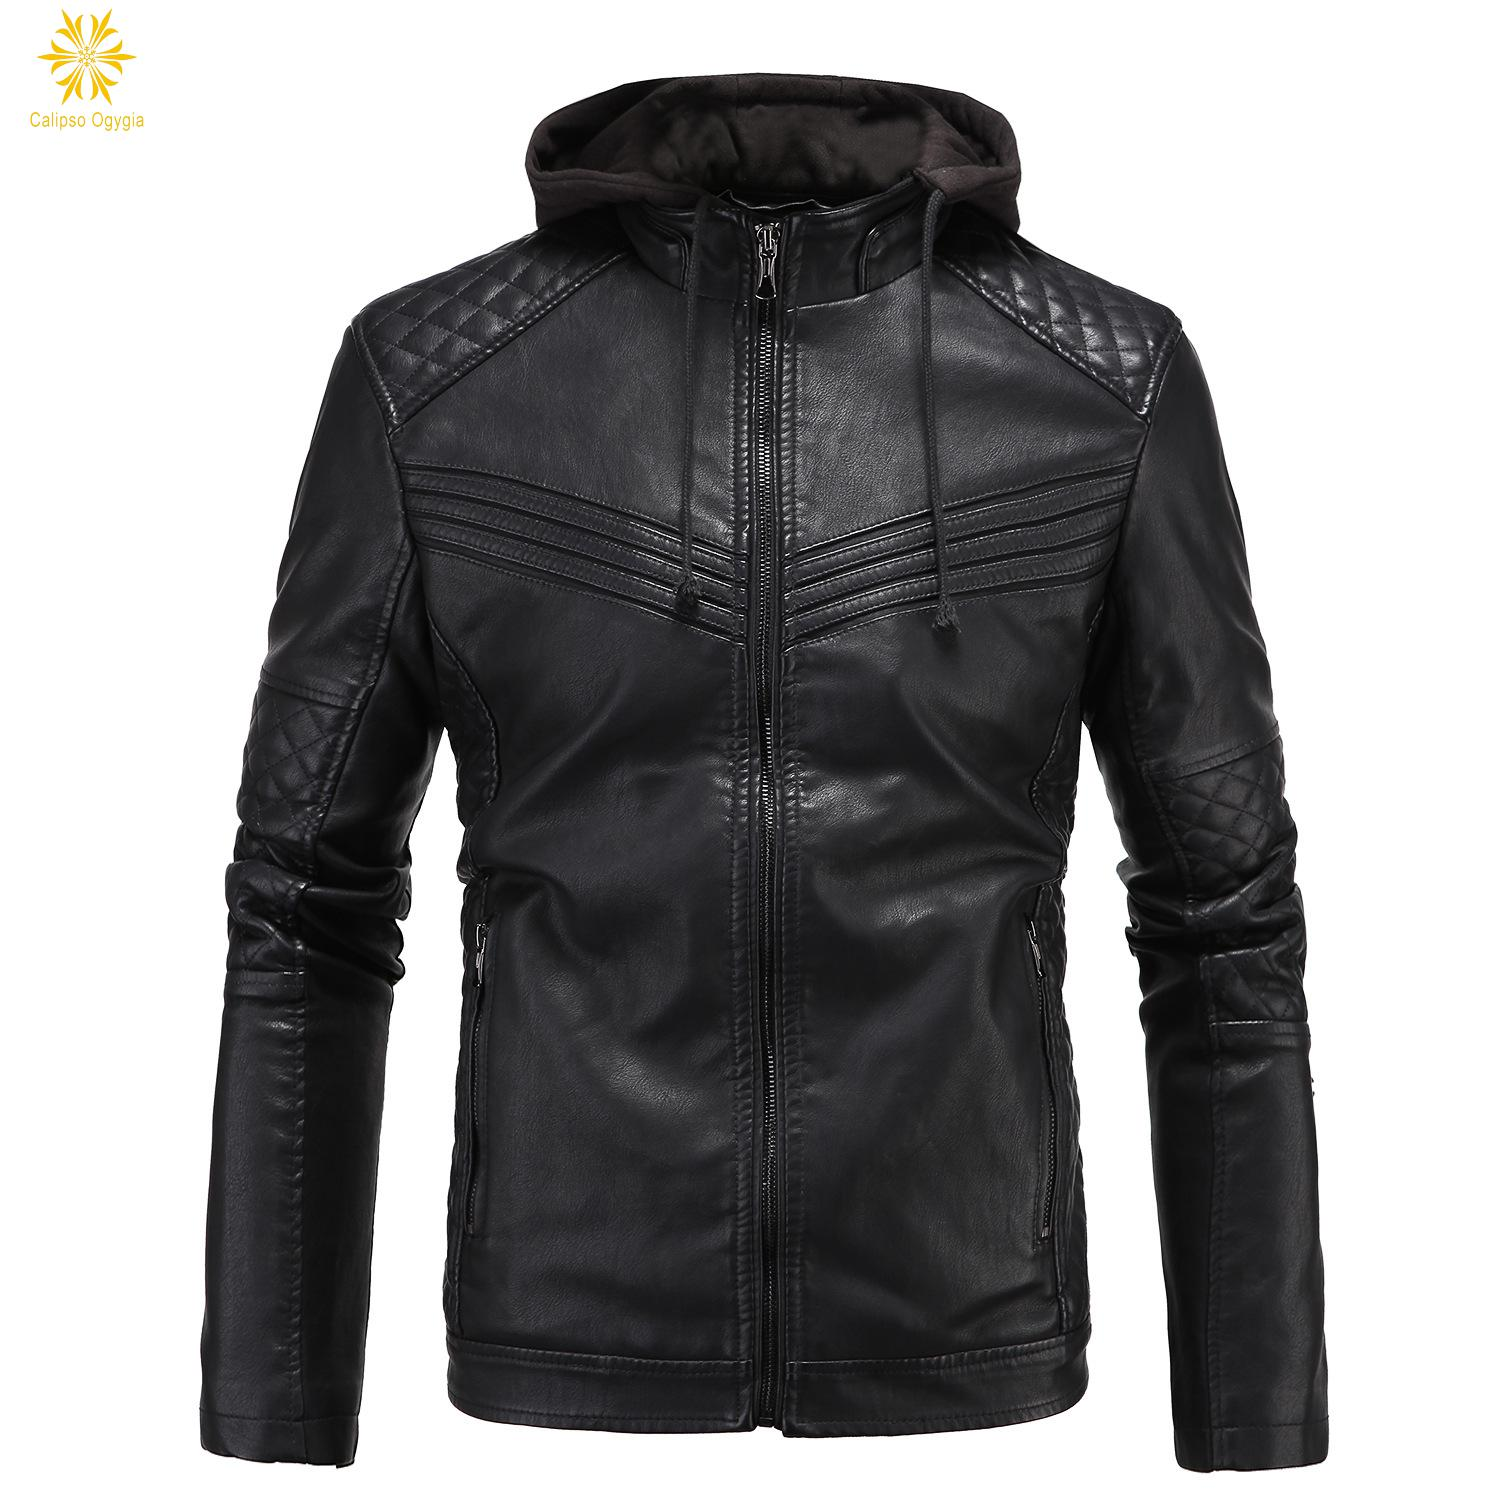 new fashion men 39 s leather hoodie motorcycle coats jackets hooded washed leather coat xl xxl 3xl. Black Bedroom Furniture Sets. Home Design Ideas